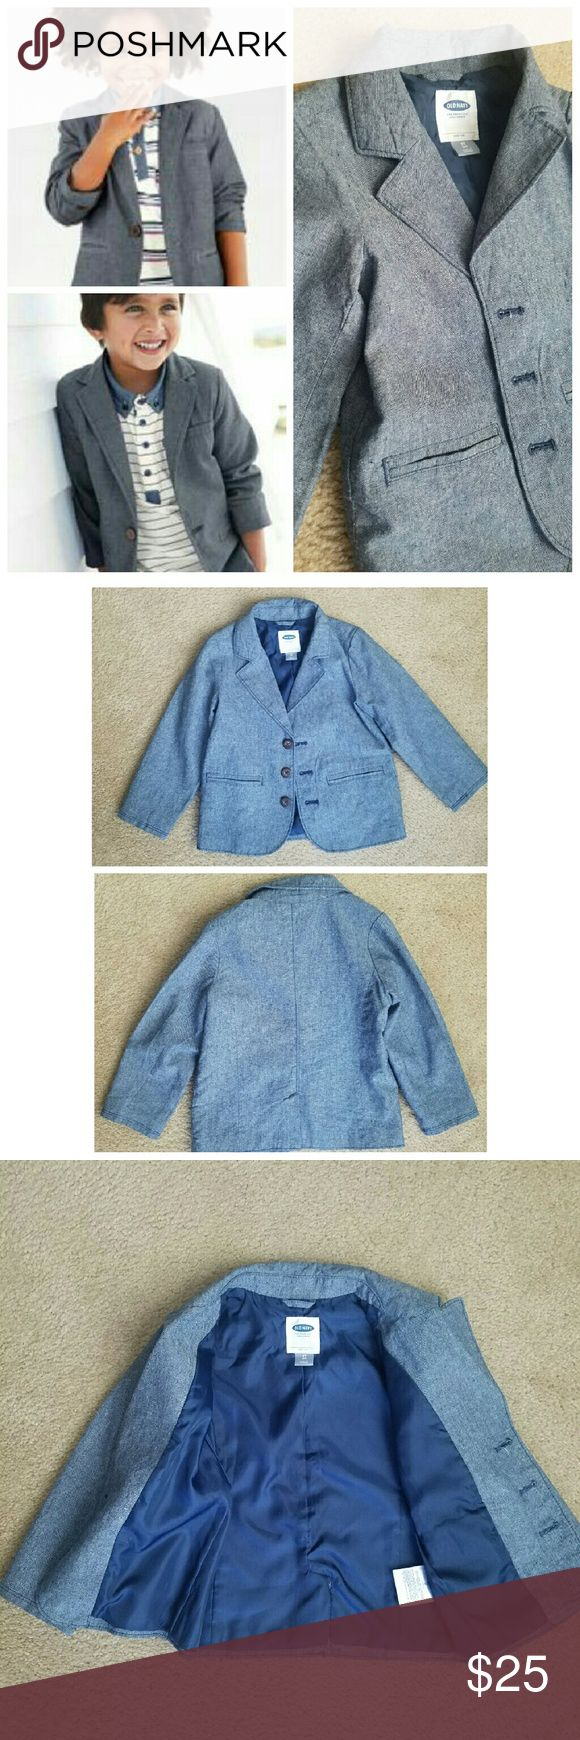 NEW Toddler Boy Chambray Blazer NWOT. Lightweight. Lined. Color changes in photo are due to lighting. Last photo more accurately depicts actual color. Old Navy Jackets & Coats Blazers